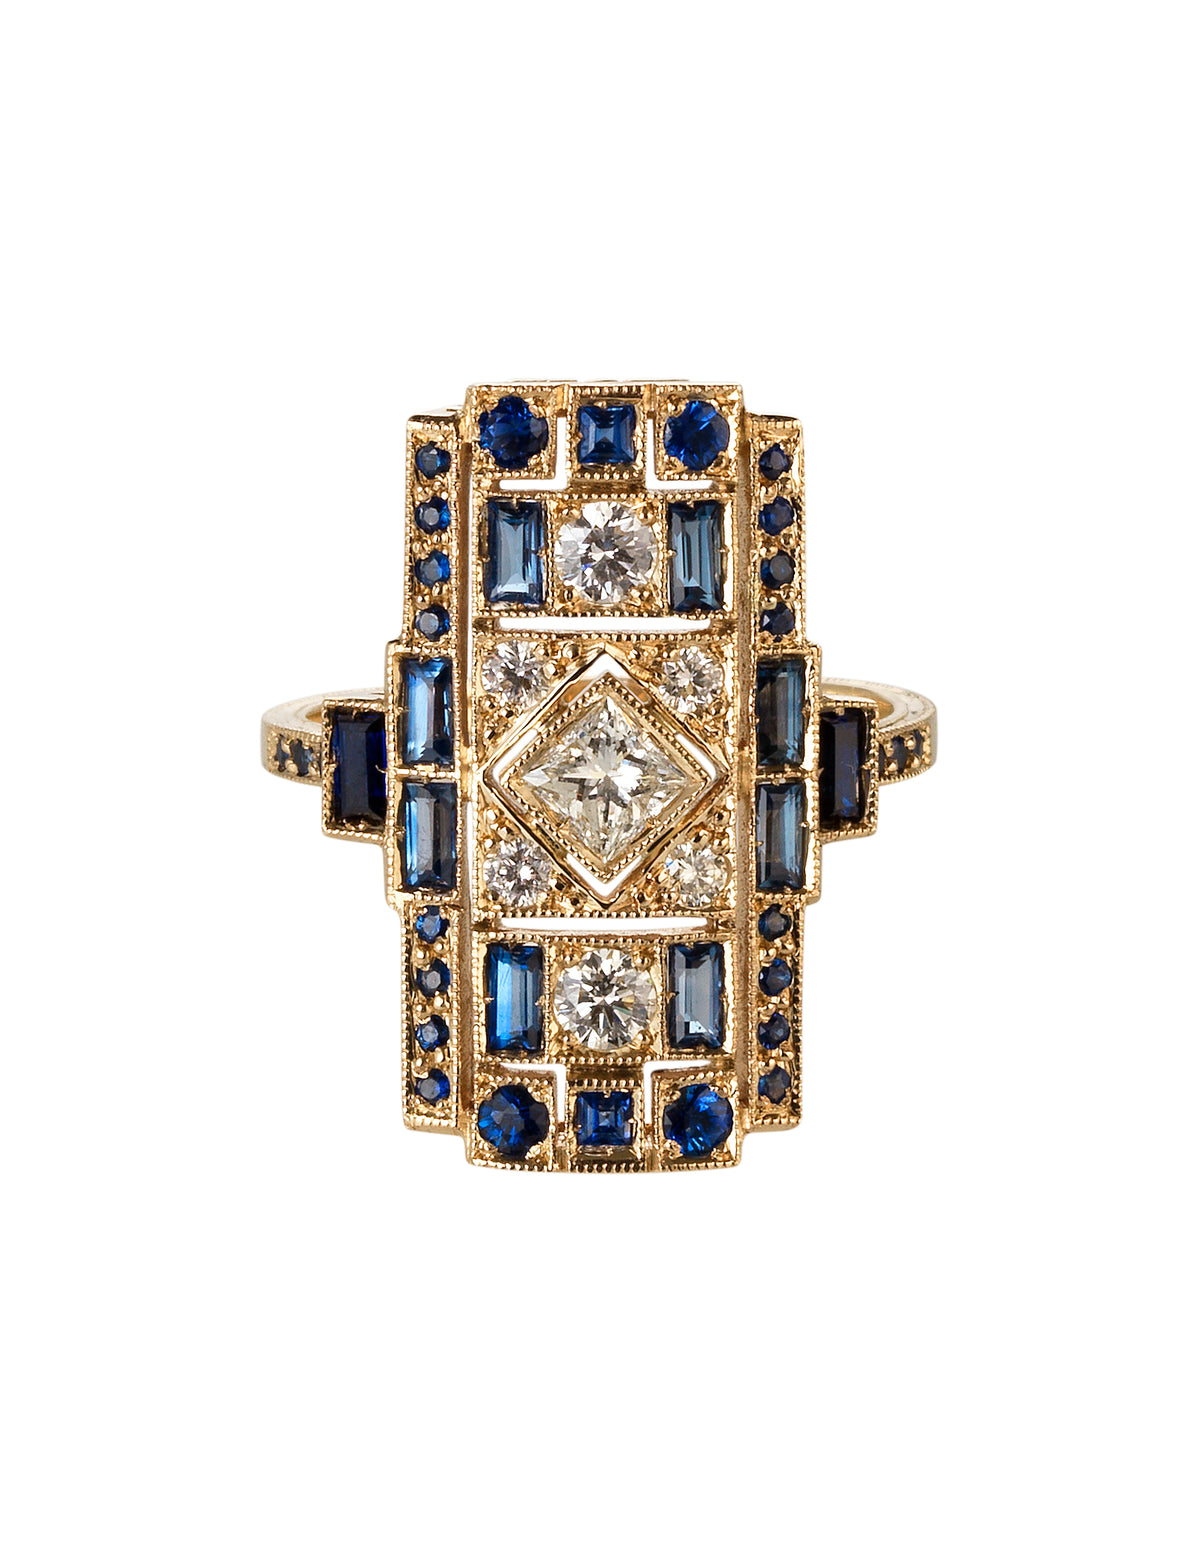 Ring in 18k White Gold set with Blue Sapphires and White Diamonds